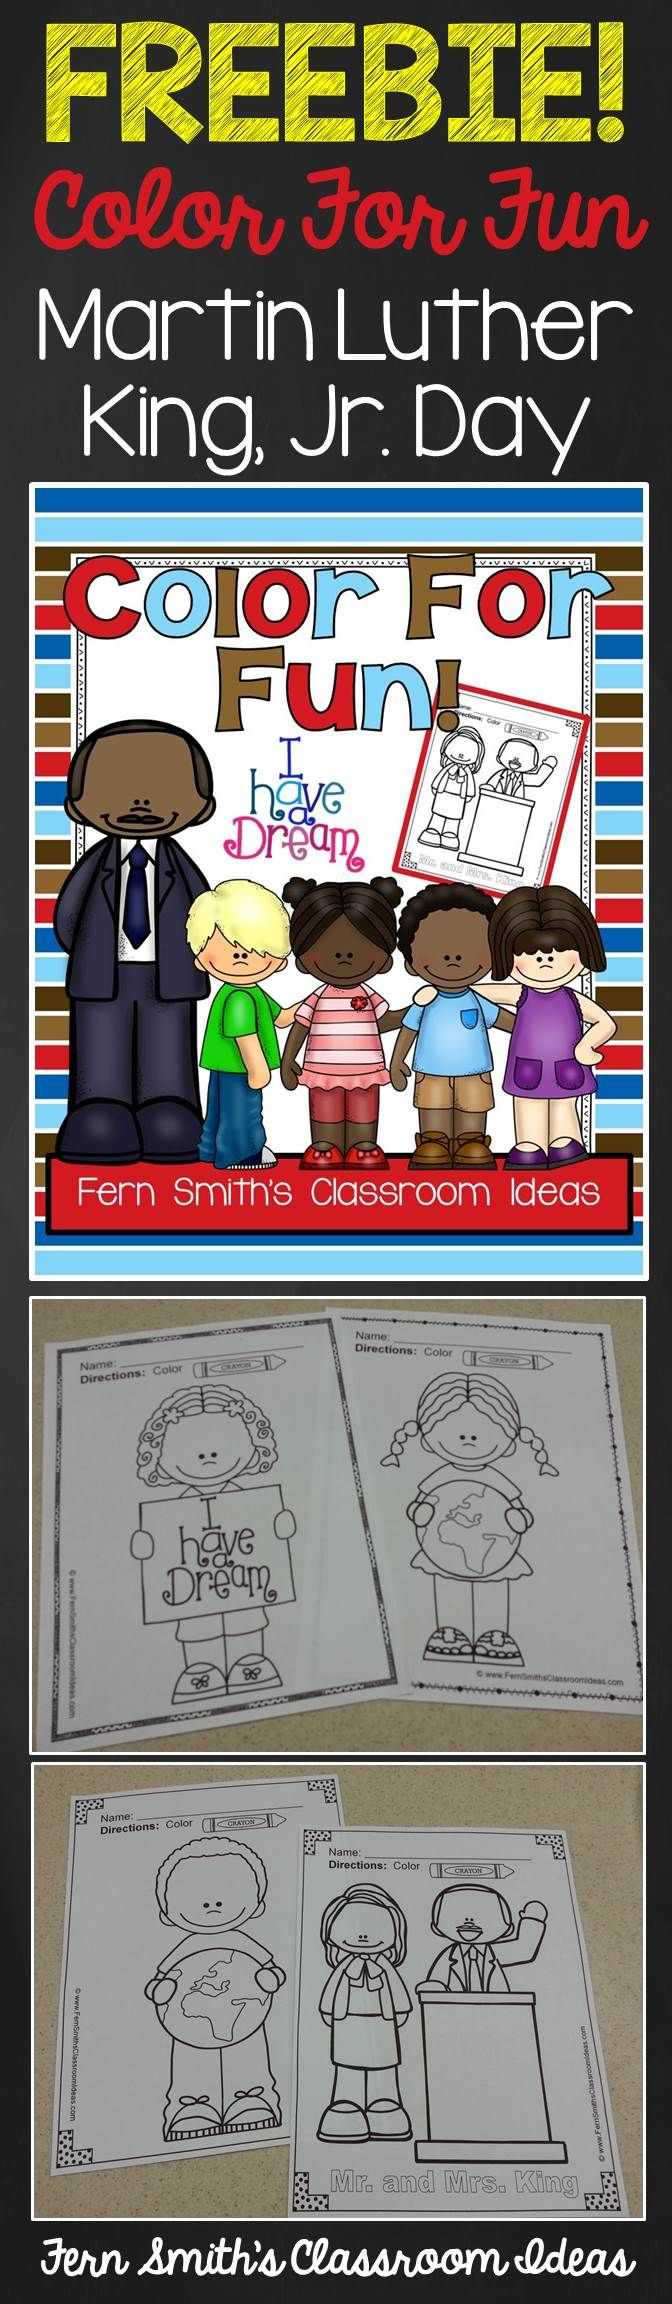 Preschool coloring pages martin luther king - 25 Best Ideas About Martin Luther King Kids On Pinterest Martin Luther King Day King Jr And Martin Luther Day